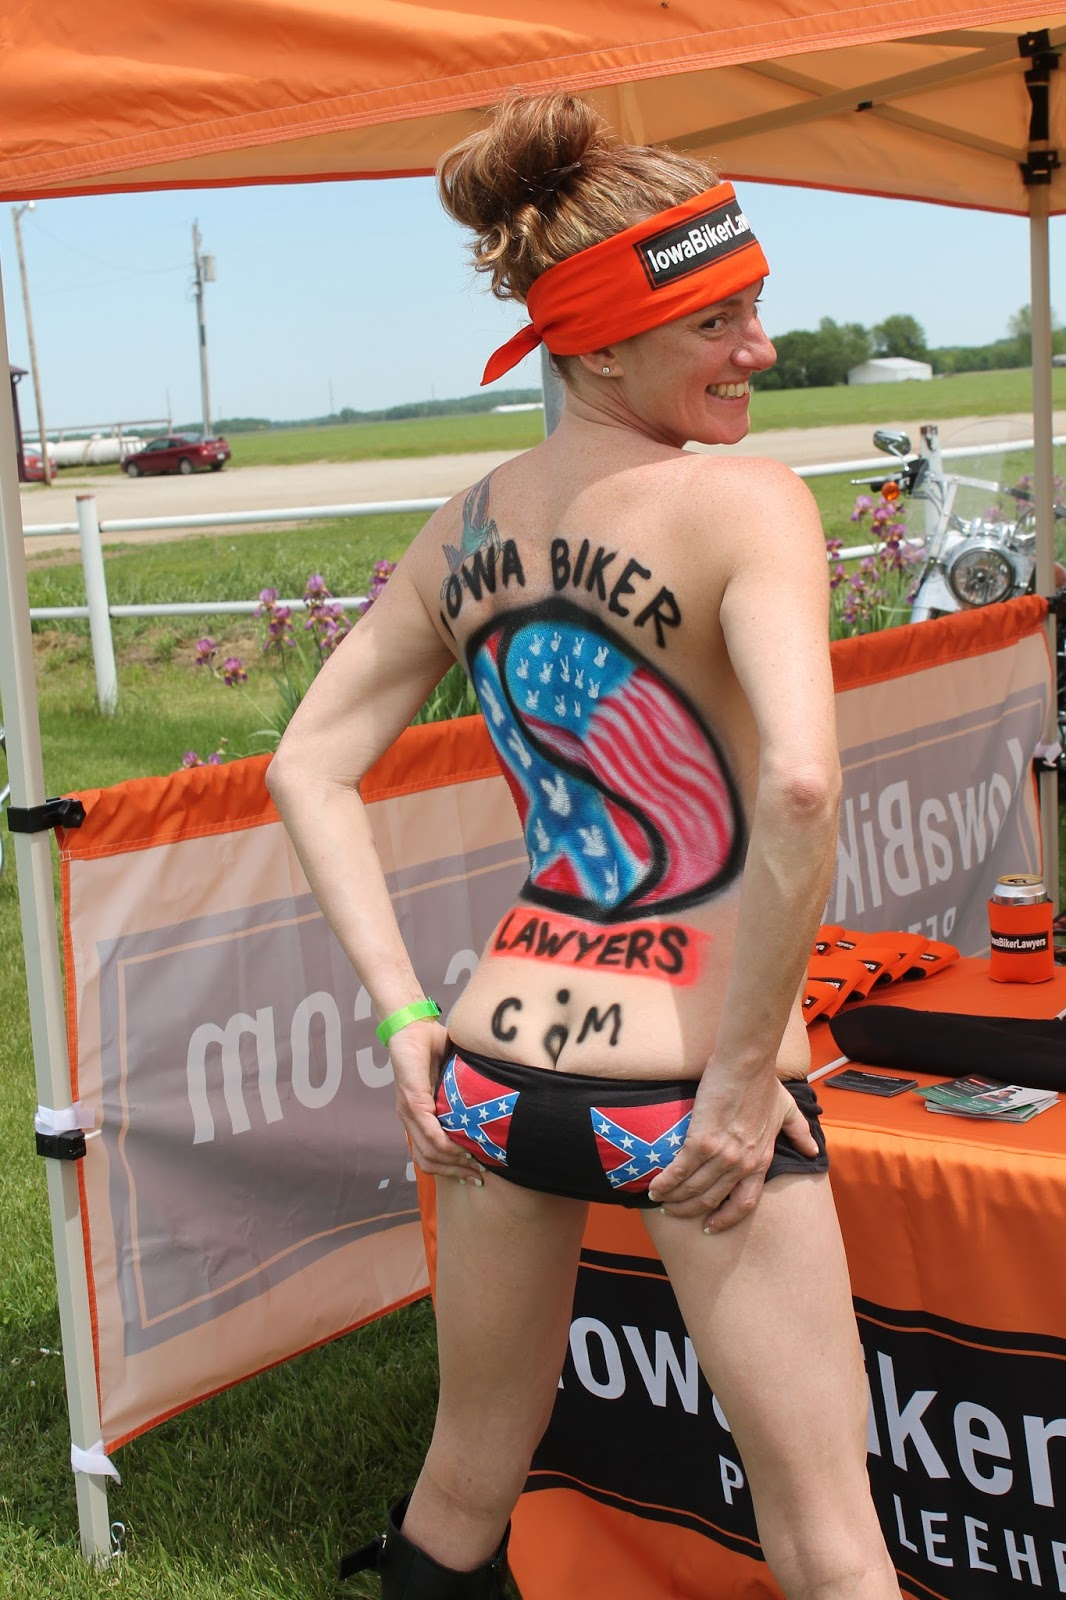 Conesville iowa bike rally 2012 pictures